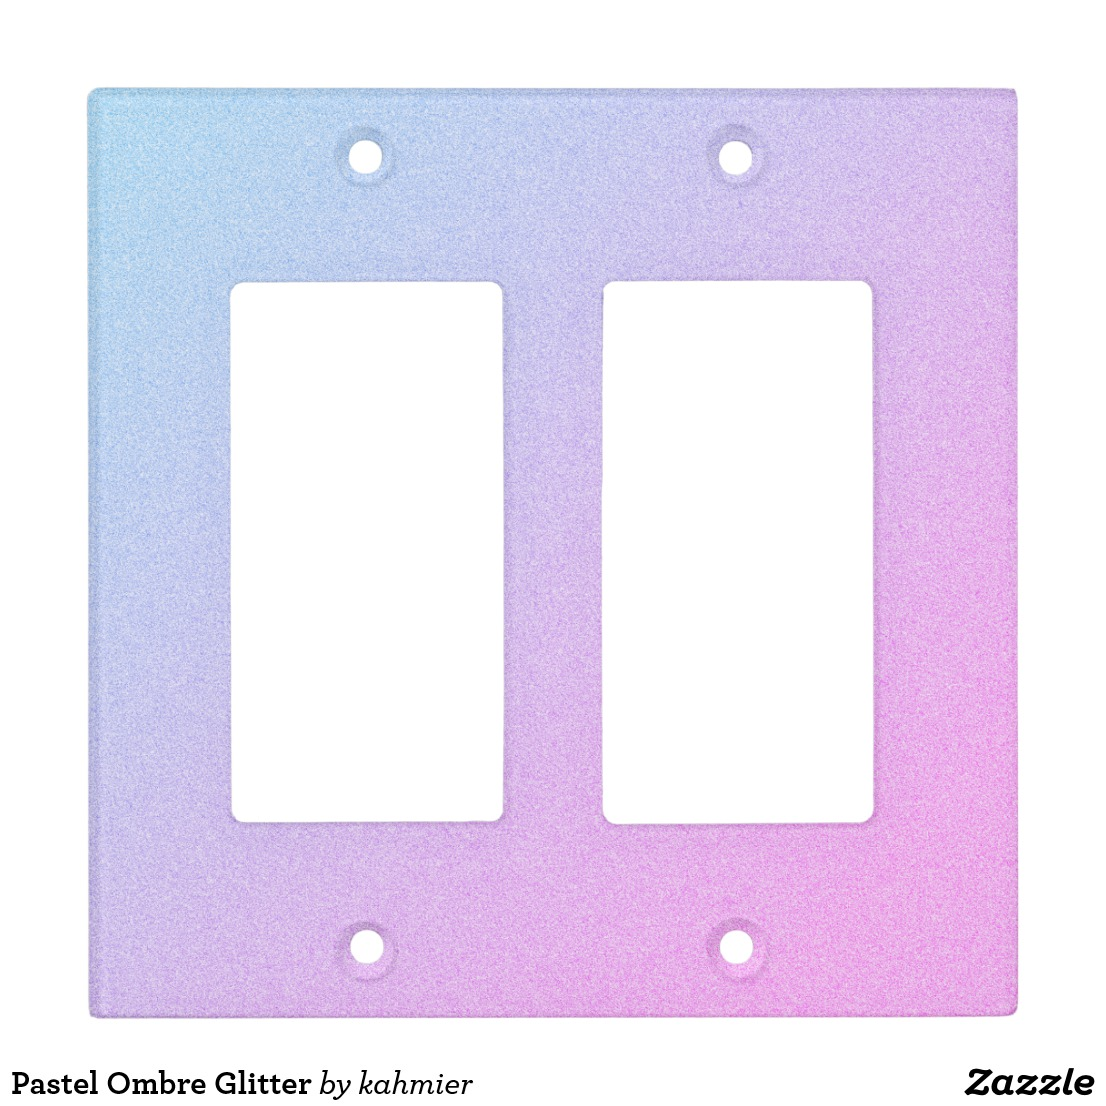 Pastel Ombre Glitter Light Switch Cover